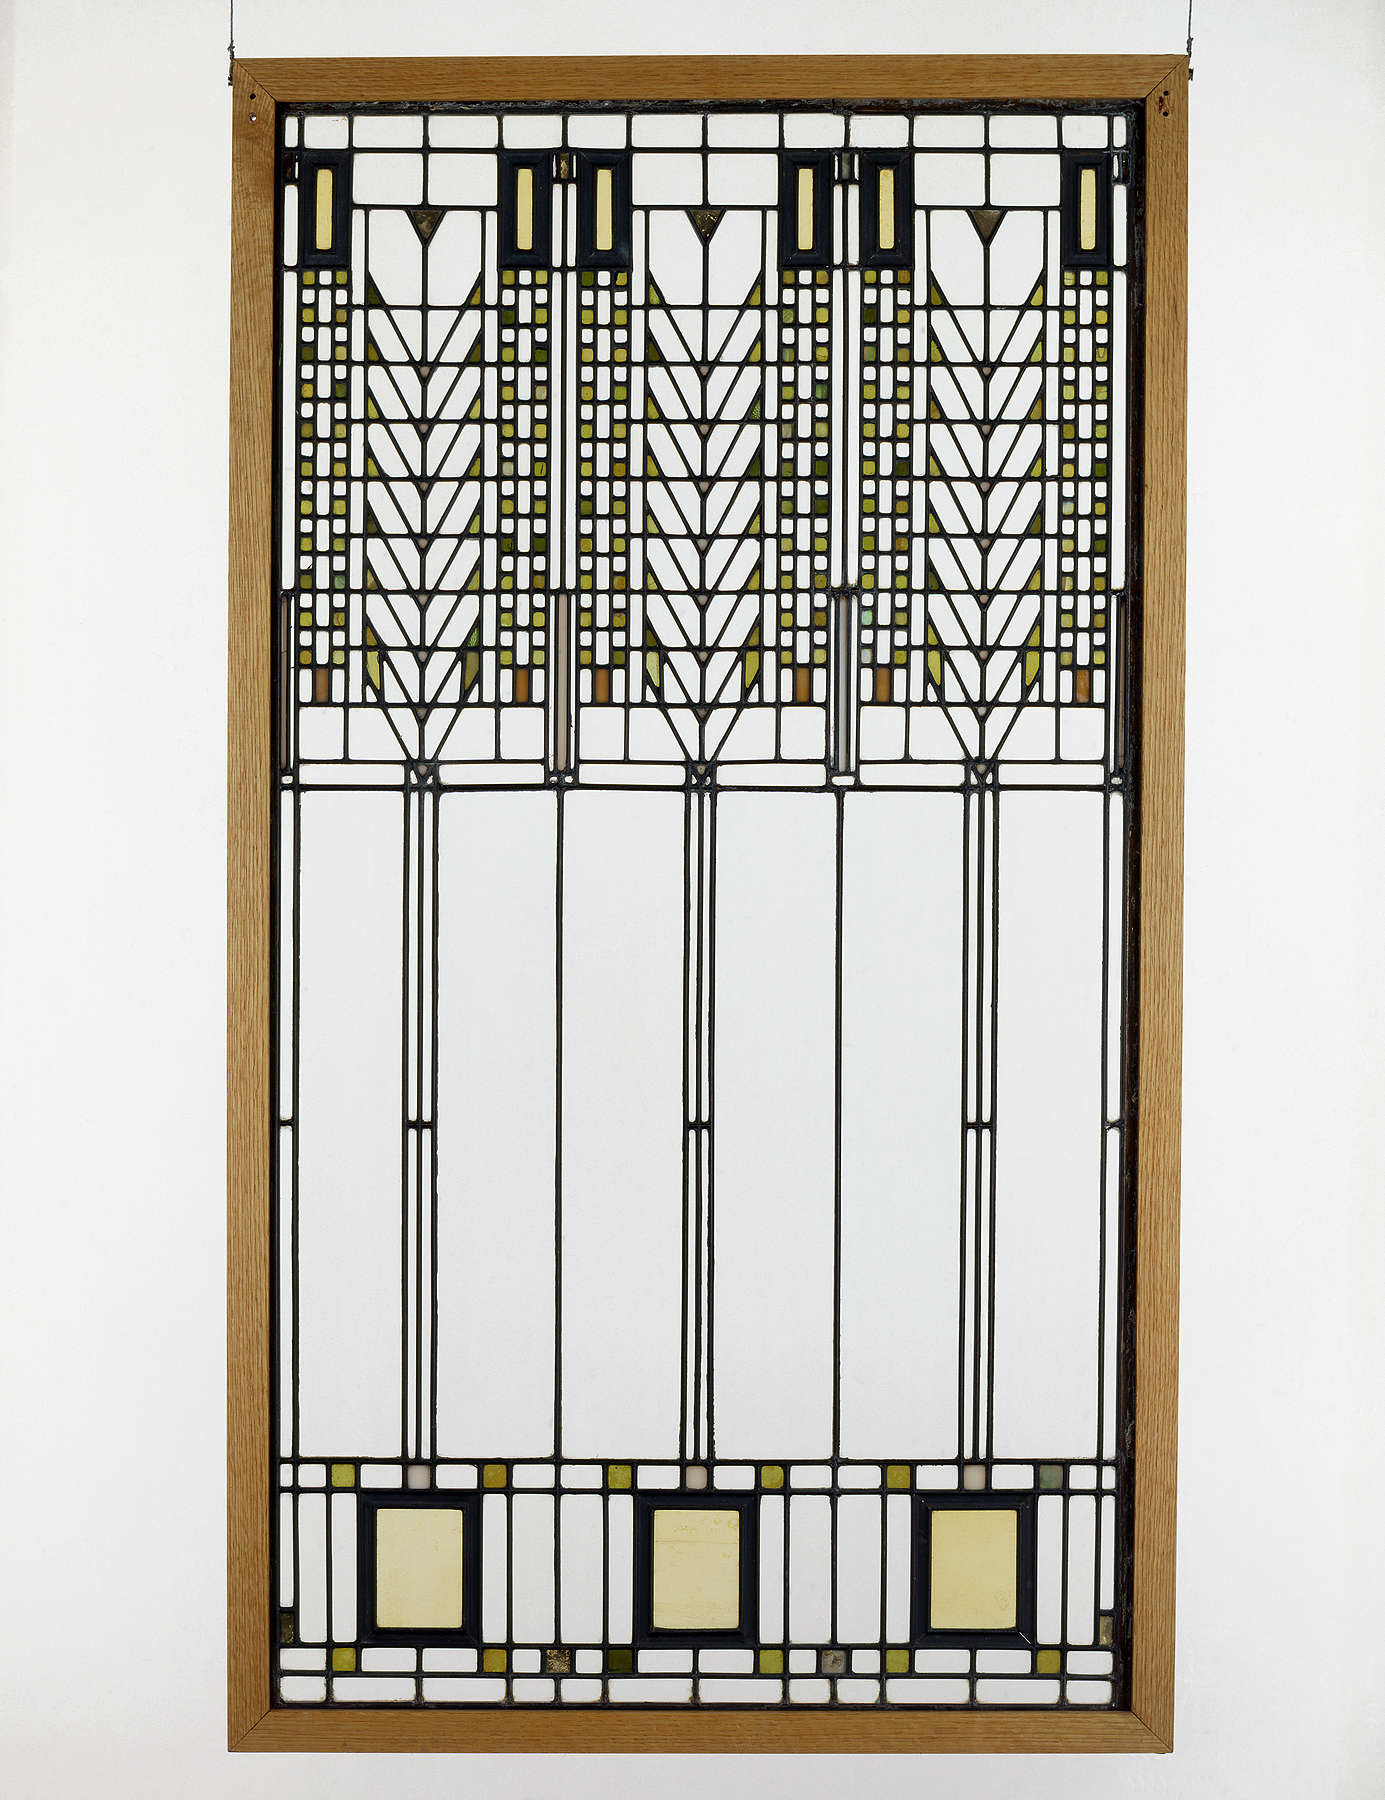 "Frank Lloyd Wright (American, 1867–1959). ""Tree of Life"" Window from the Darwin D. Martin House (Buffalo, New York), 1904. Glass with zinc cames. Milwaukee Art Museum, Gift of the Frederick Layton Art League in memory of Miss Charlotte Partridge and Miss Miriam Frink M1978.262. Photo credit: Richard Beauchamp. © Frank Lloyd Wright Foundation."